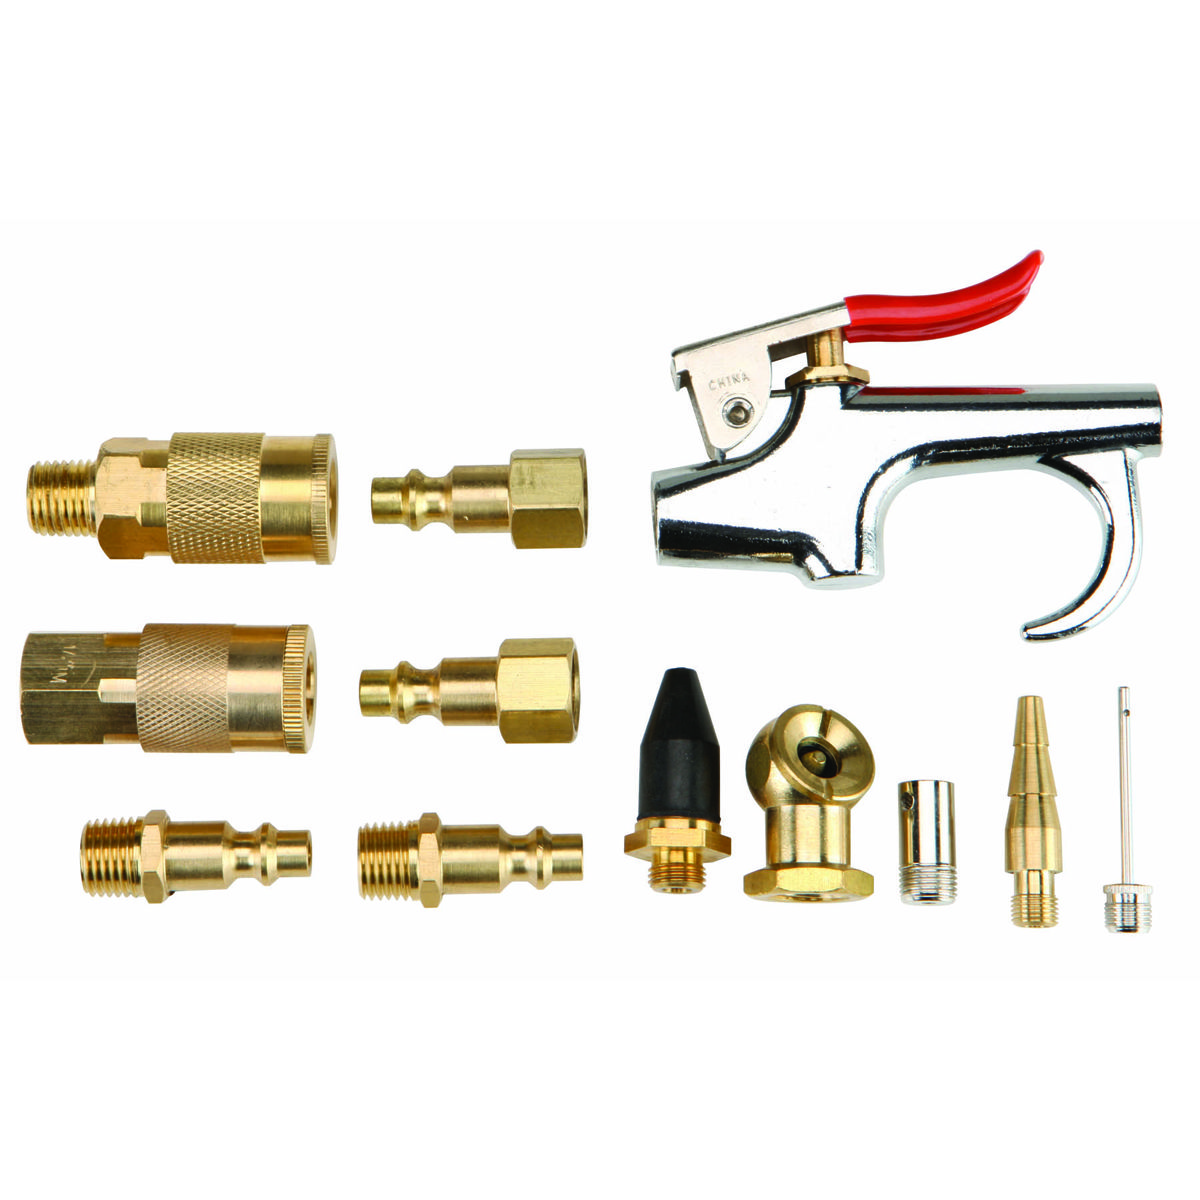 12 Pc Professional Air Tool Accessory Kit in 2019 Air